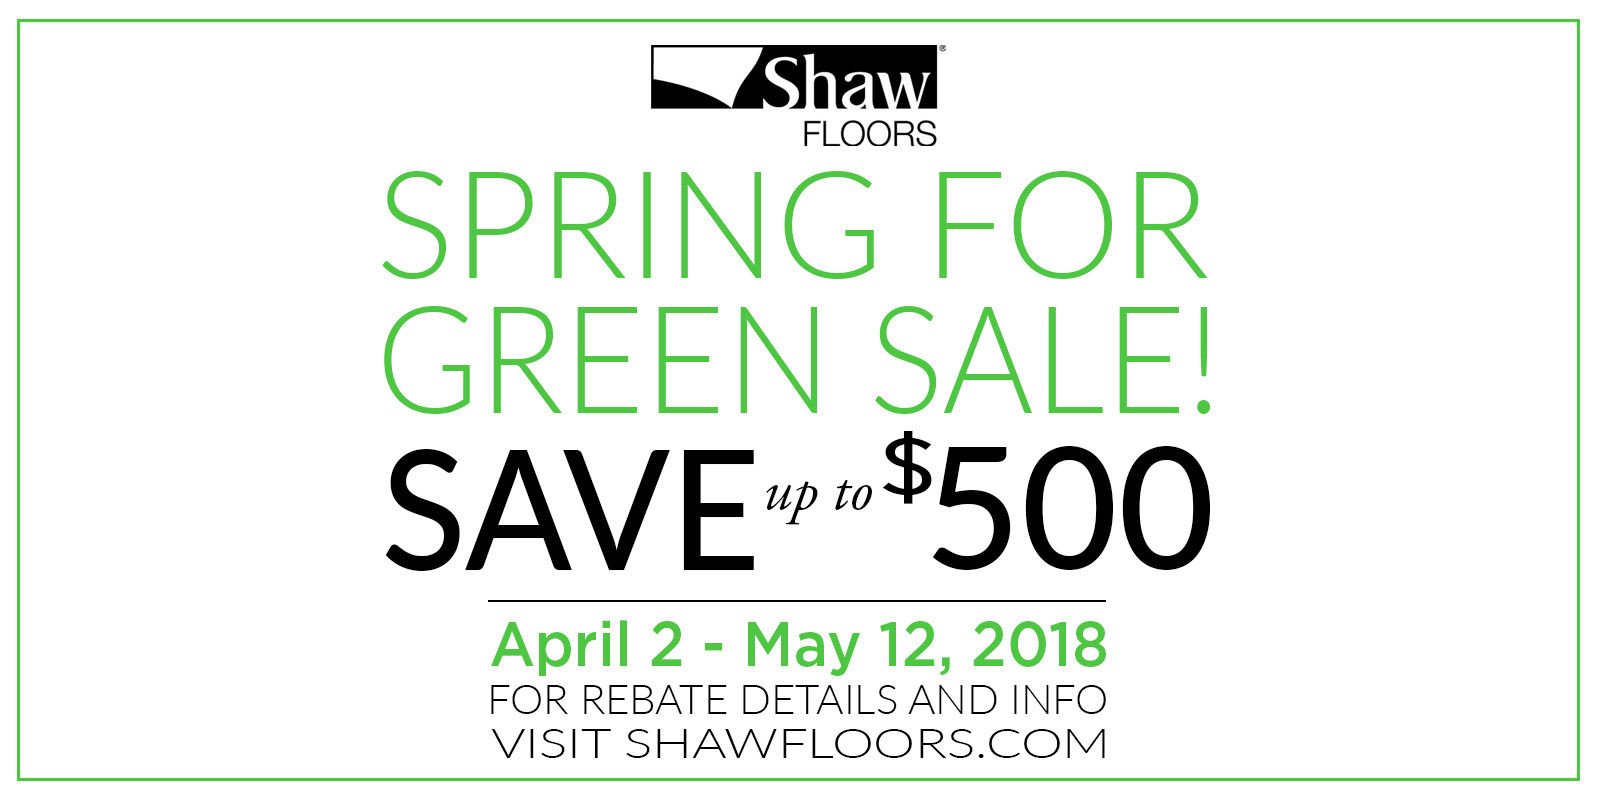 Shaw Floors Spring for Green Sale!